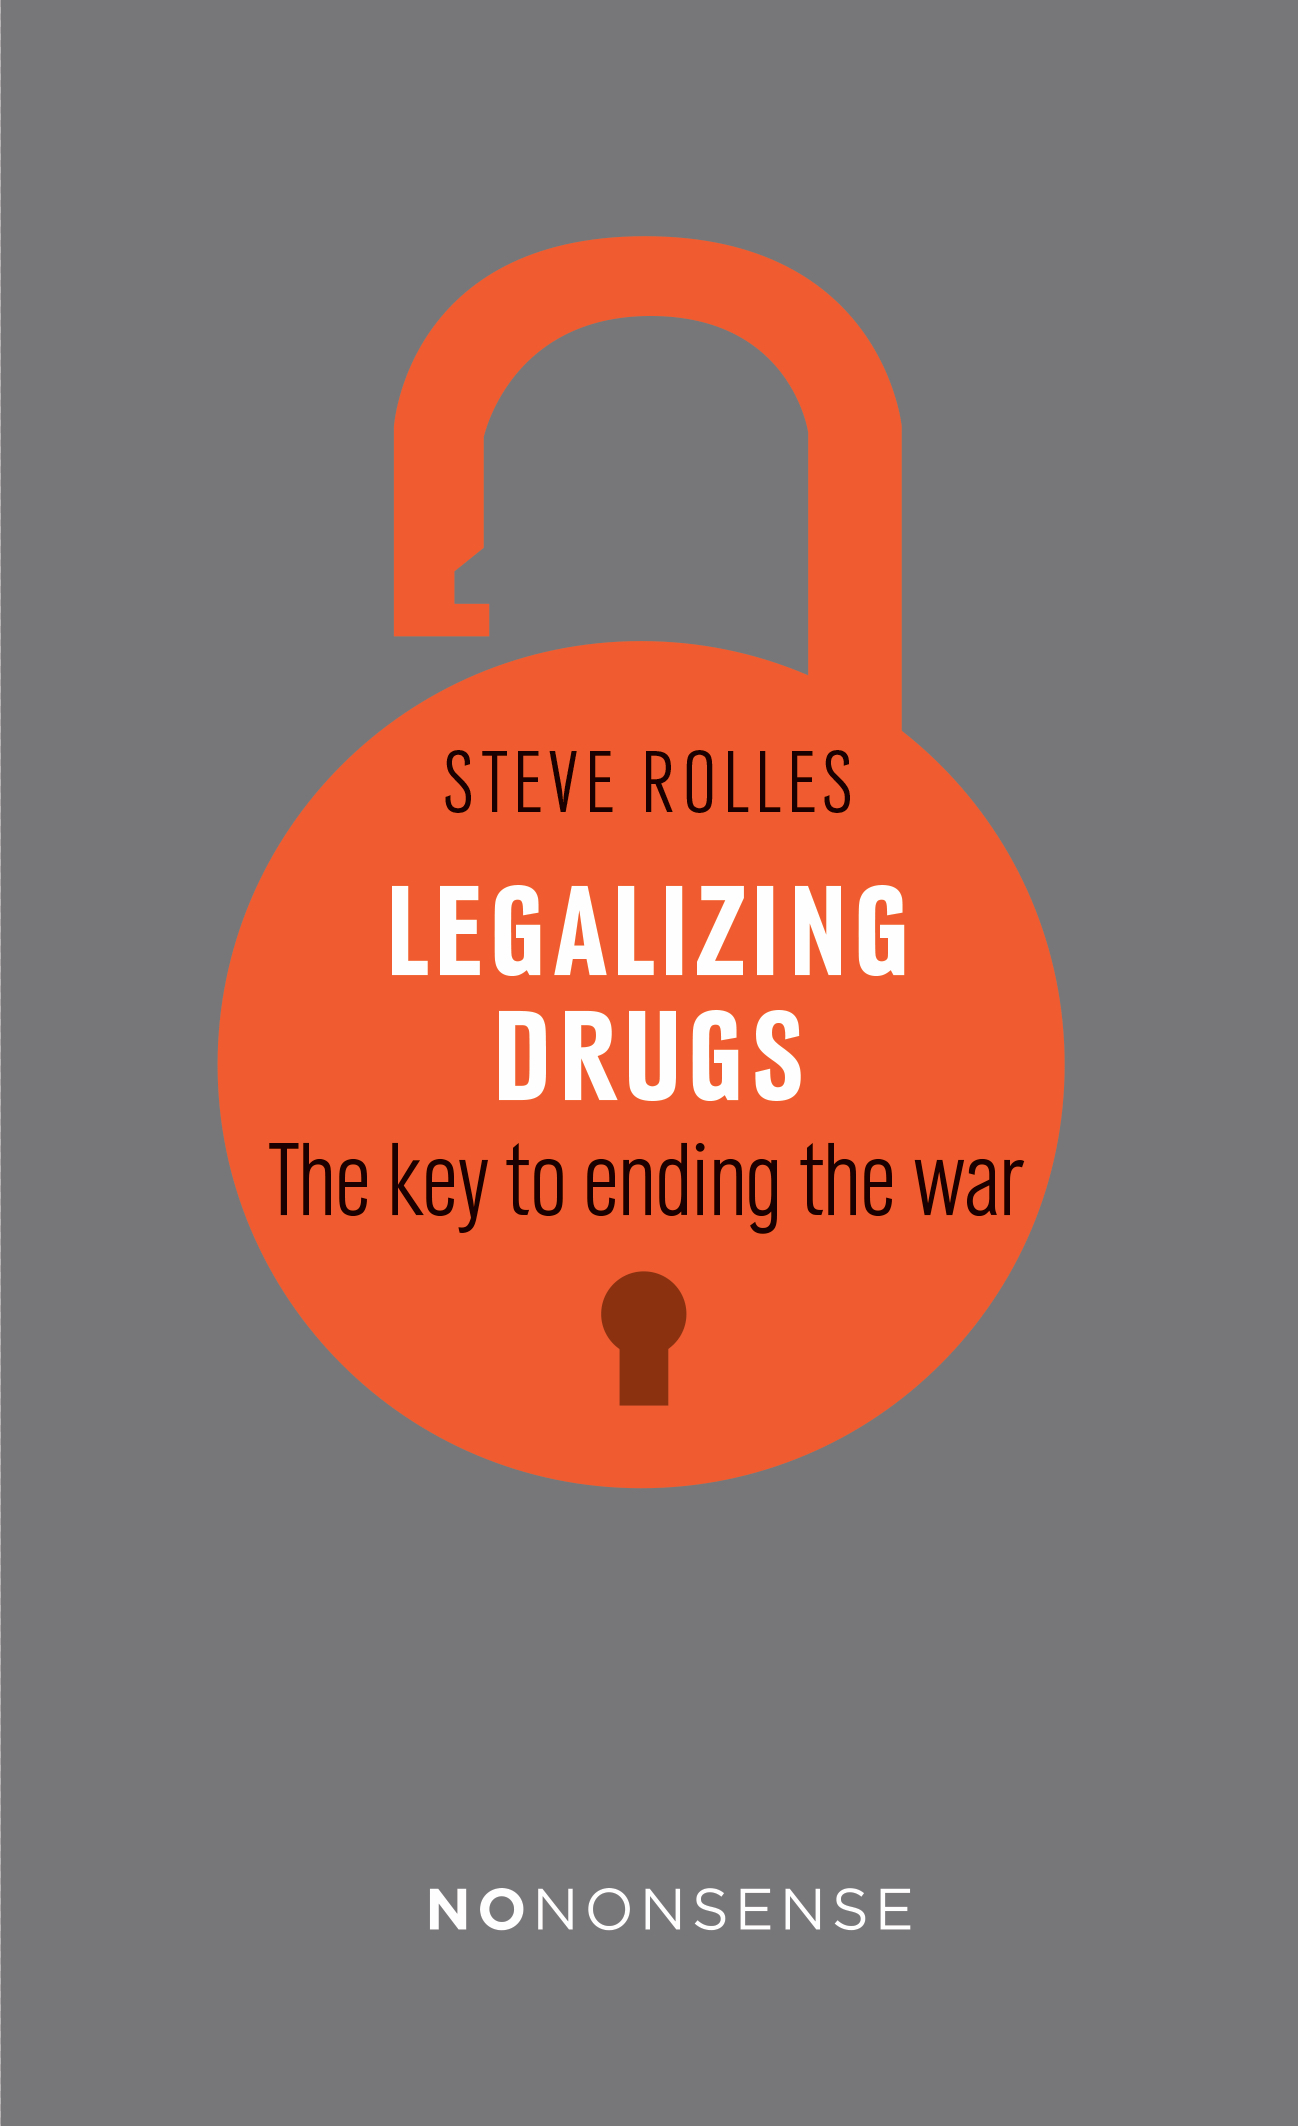 an analysis of the problem of the legalization of drugs in the united states How would you describe the problem of drugs in the united states/area where marijuana use is legal in some states business impact analysis, be10.